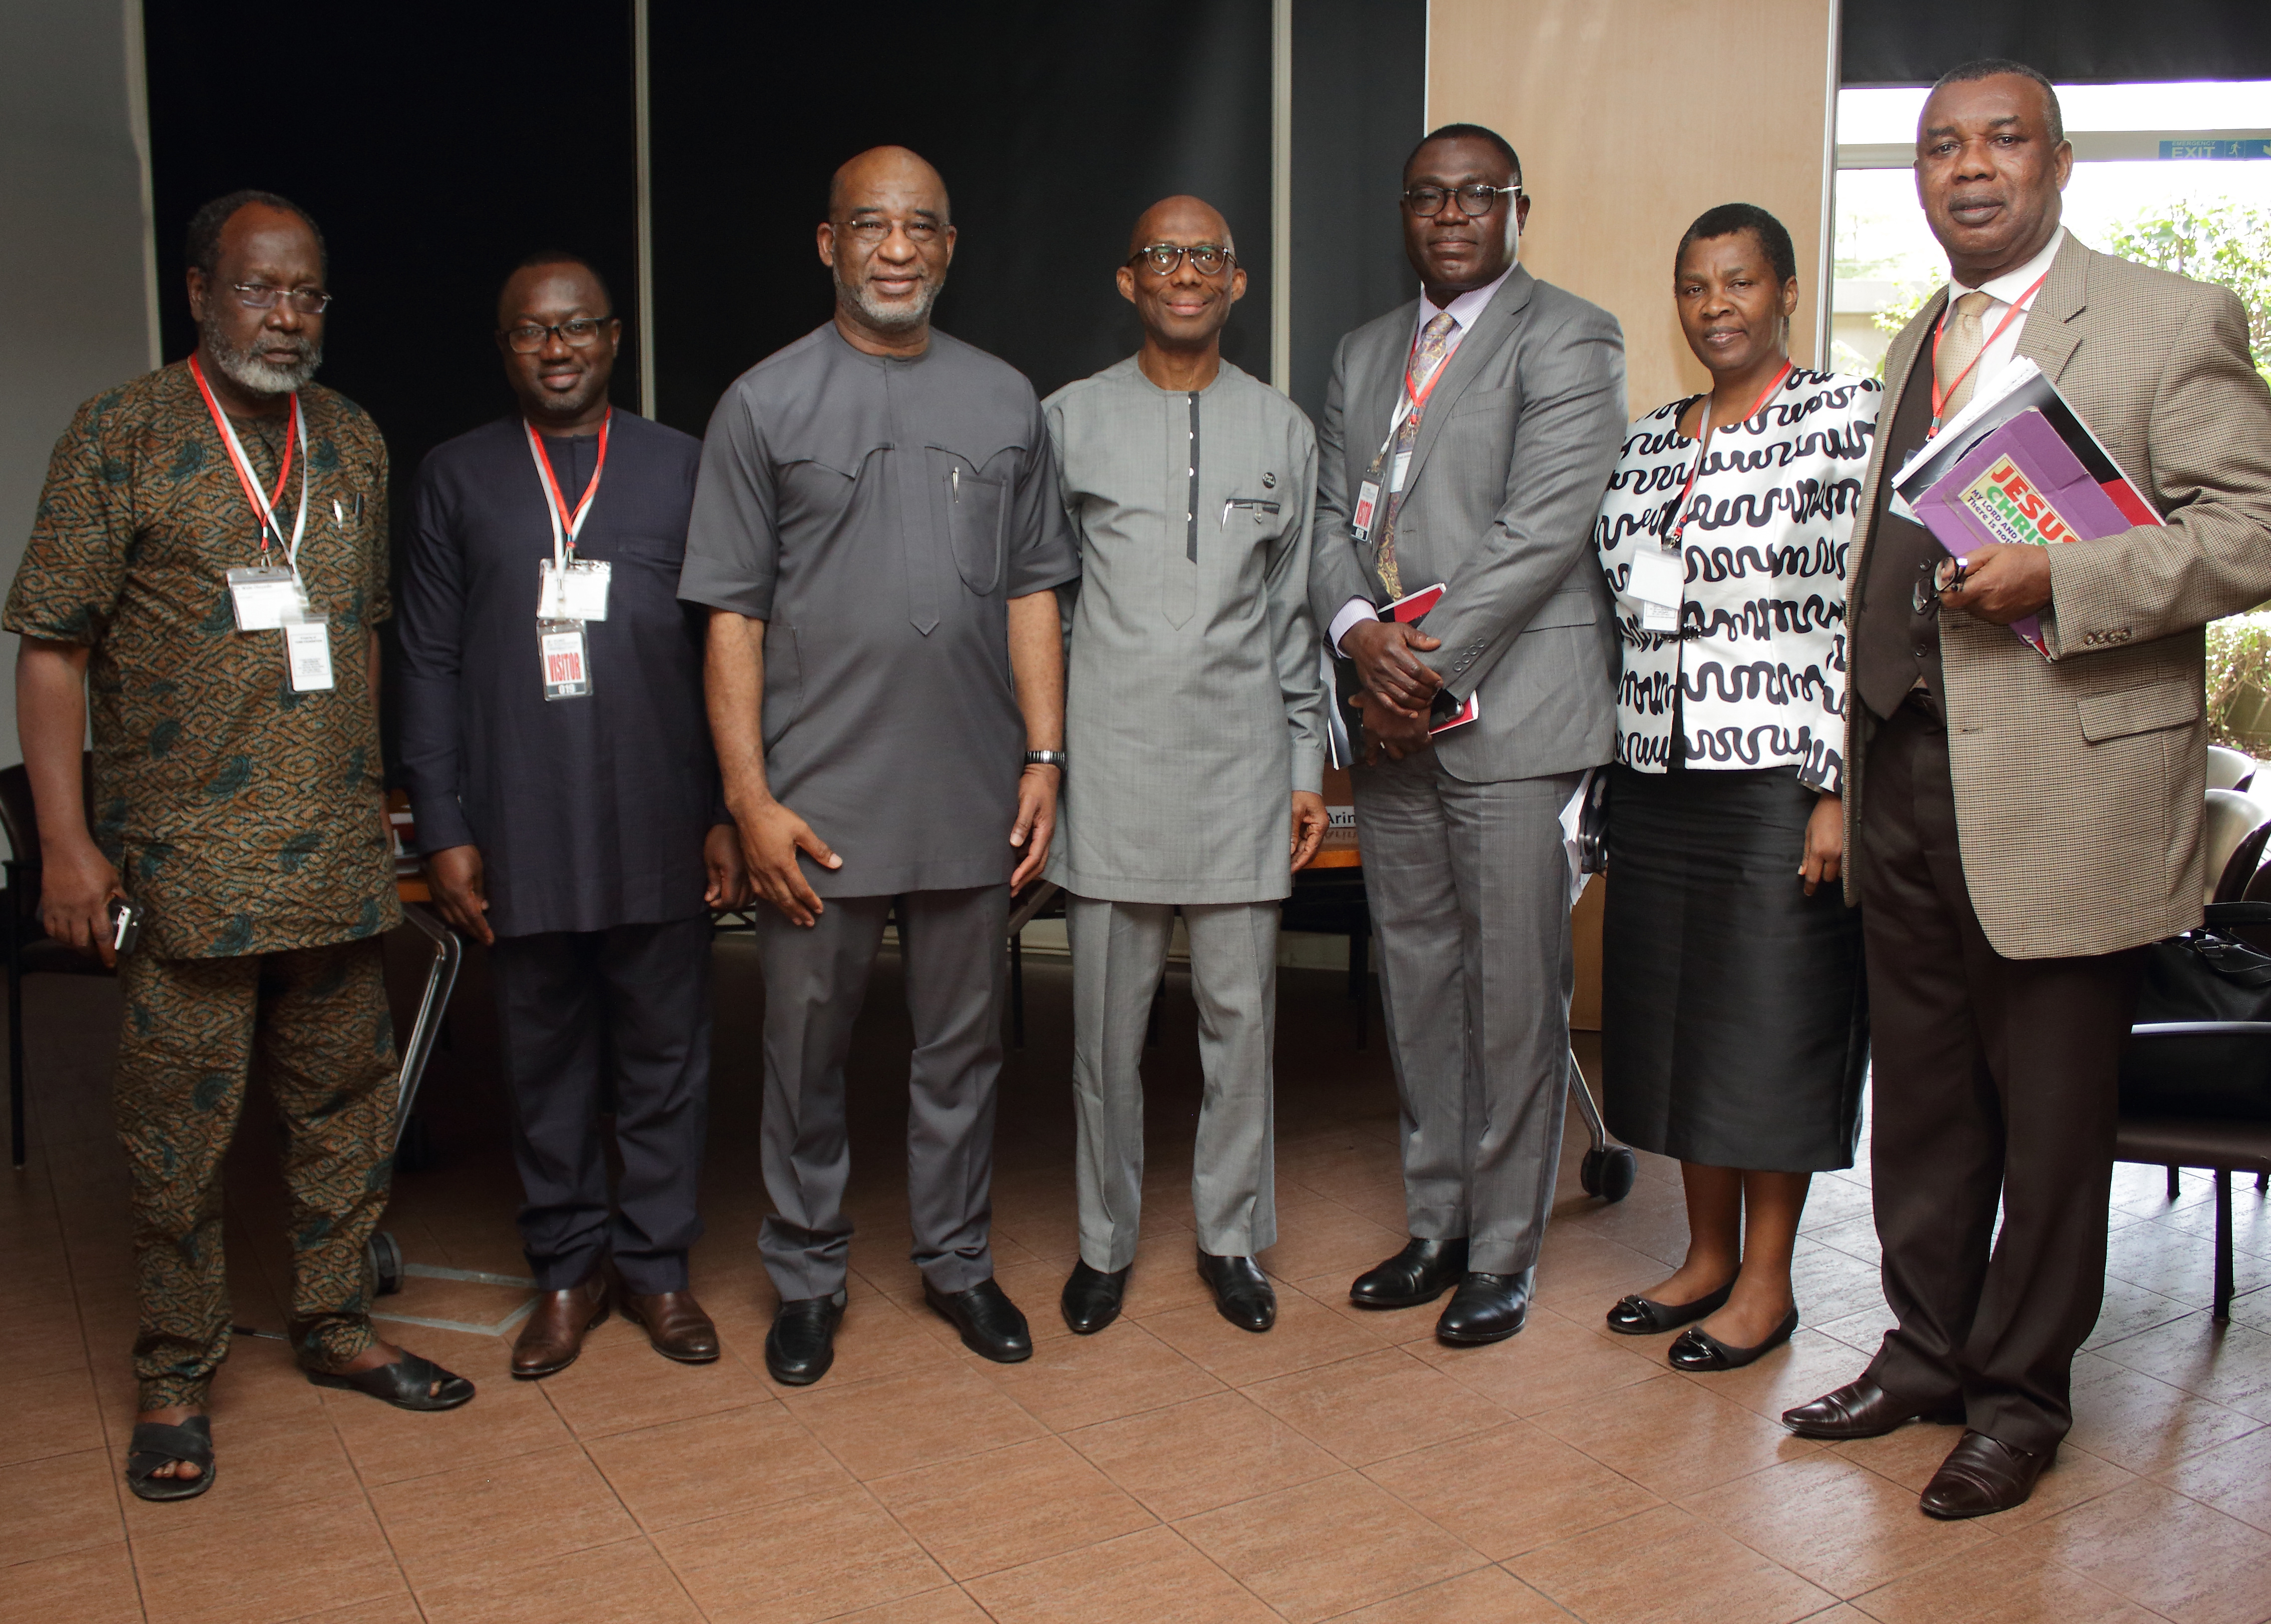 a-cross-section-of-discussants-and-key-participants-at-the-dissemination-seminar.